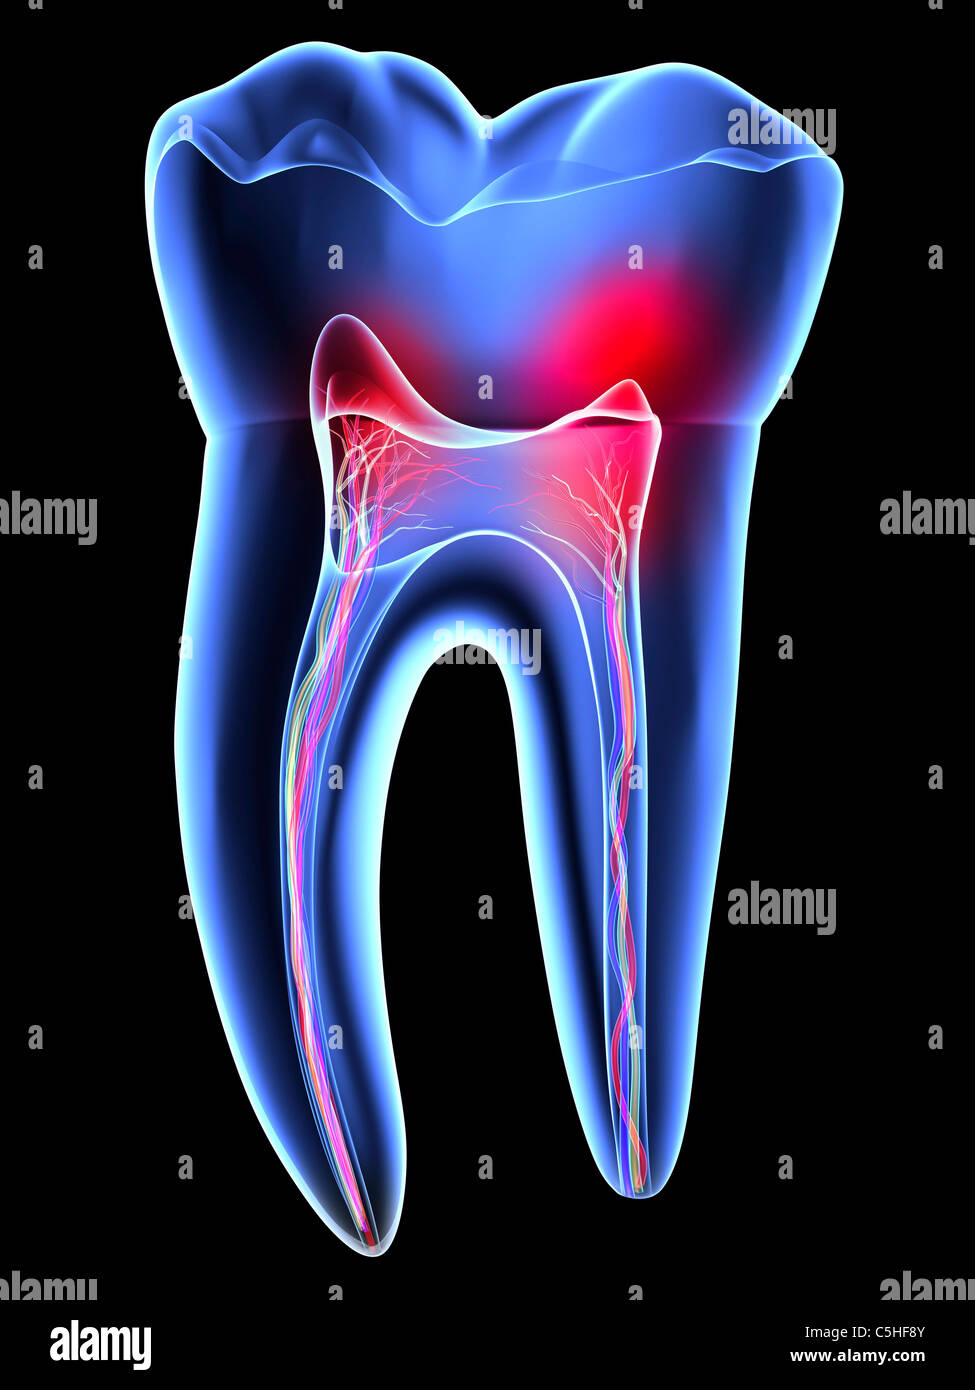 Tooth pain, toothache Stock Photo